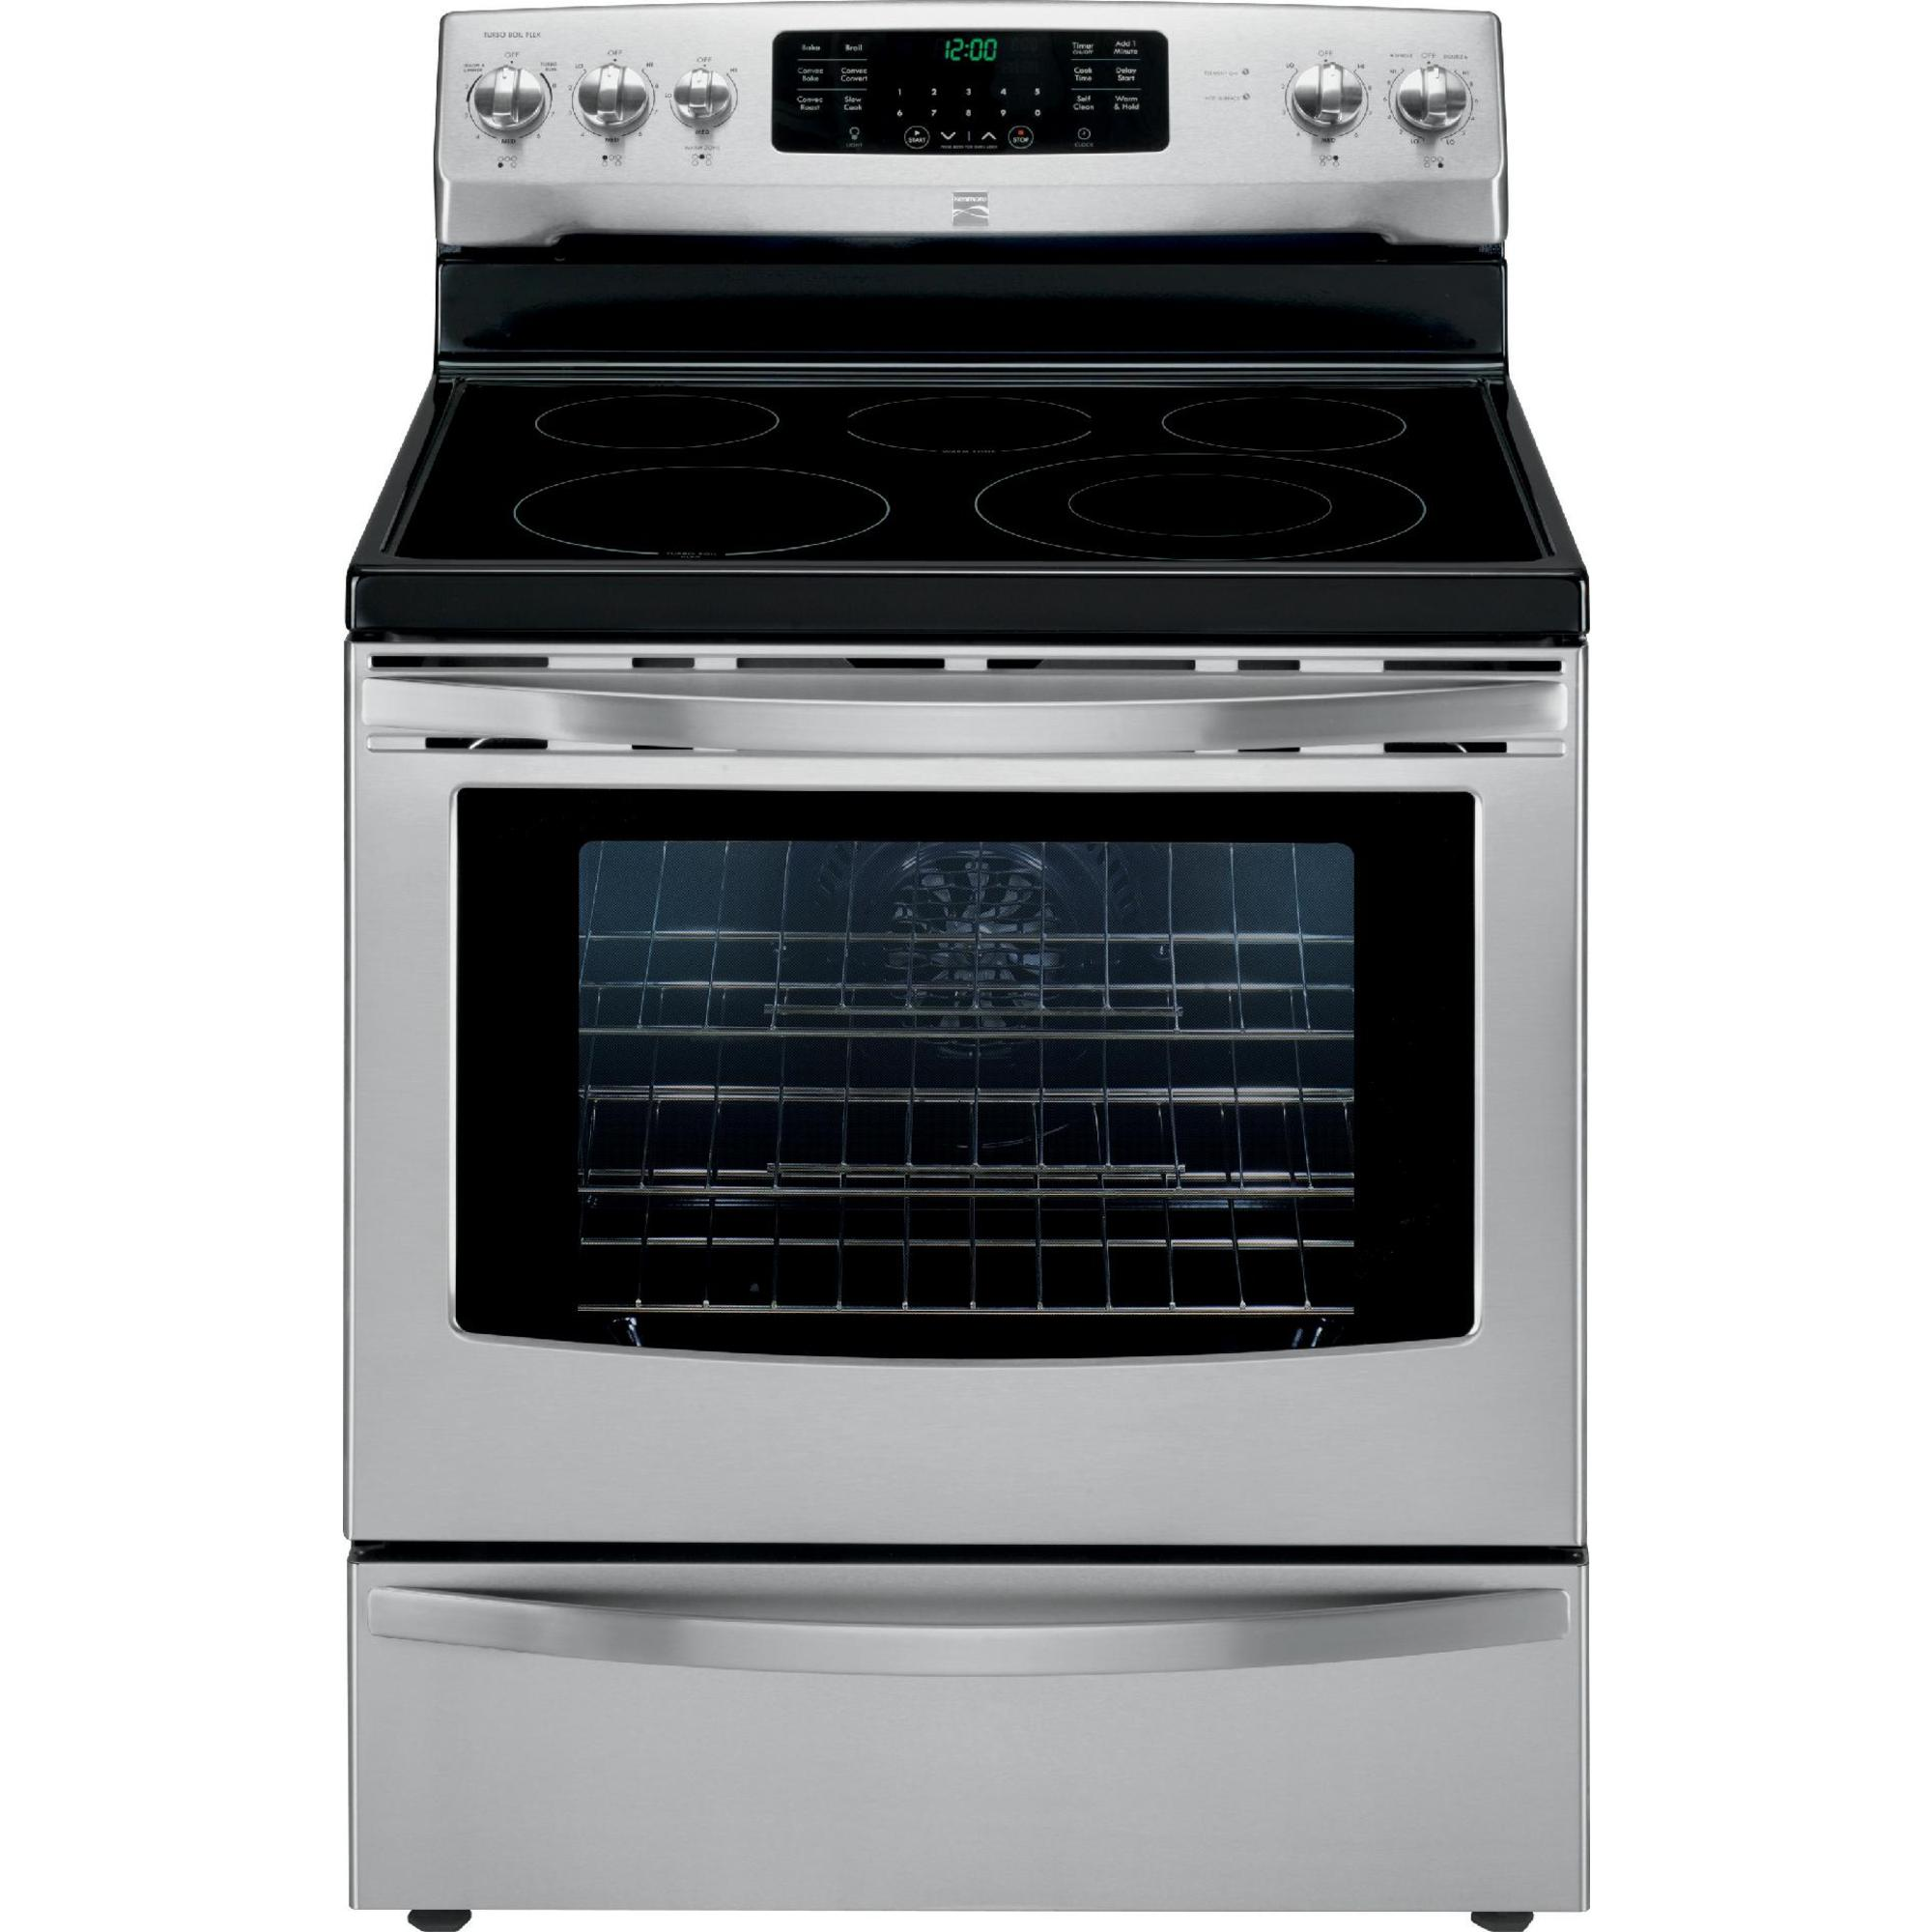 Kenmore-94203-5-7-cu-ft-Electric-Range-w-True-Convection-Stainless-Steel